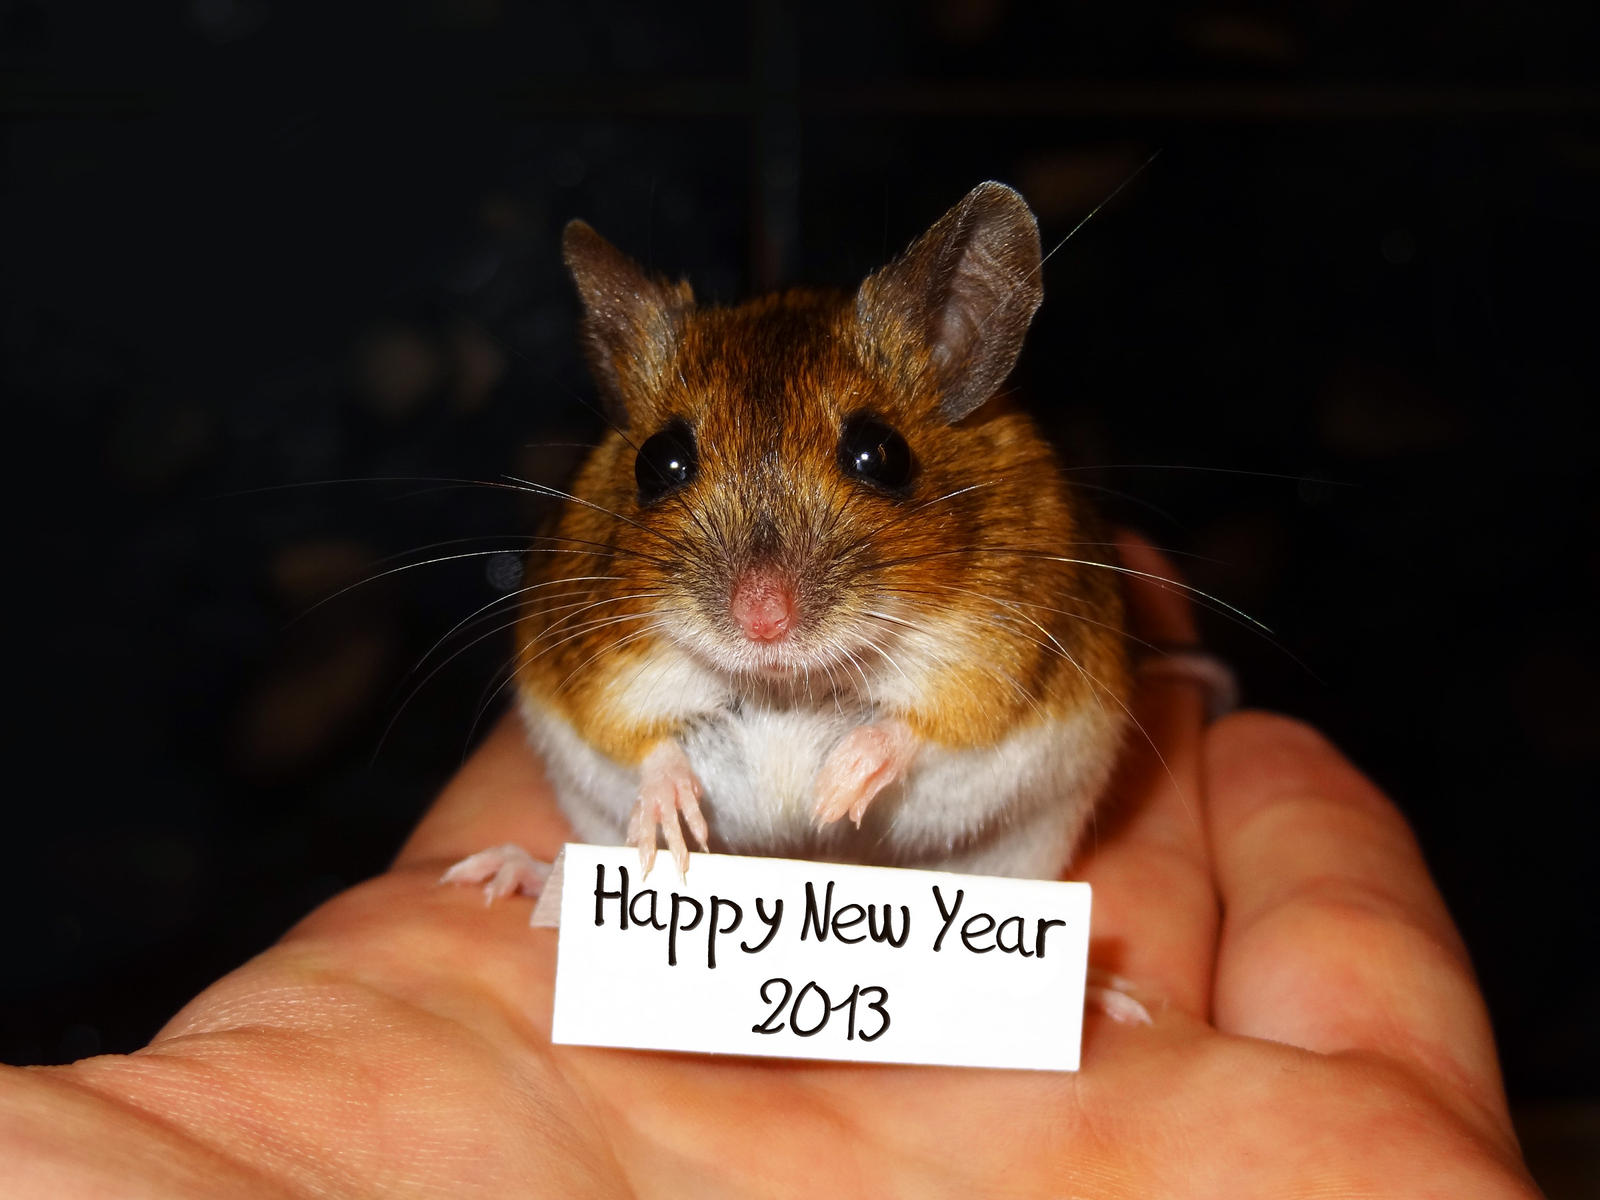 Happy New Year 2013 by eco6org